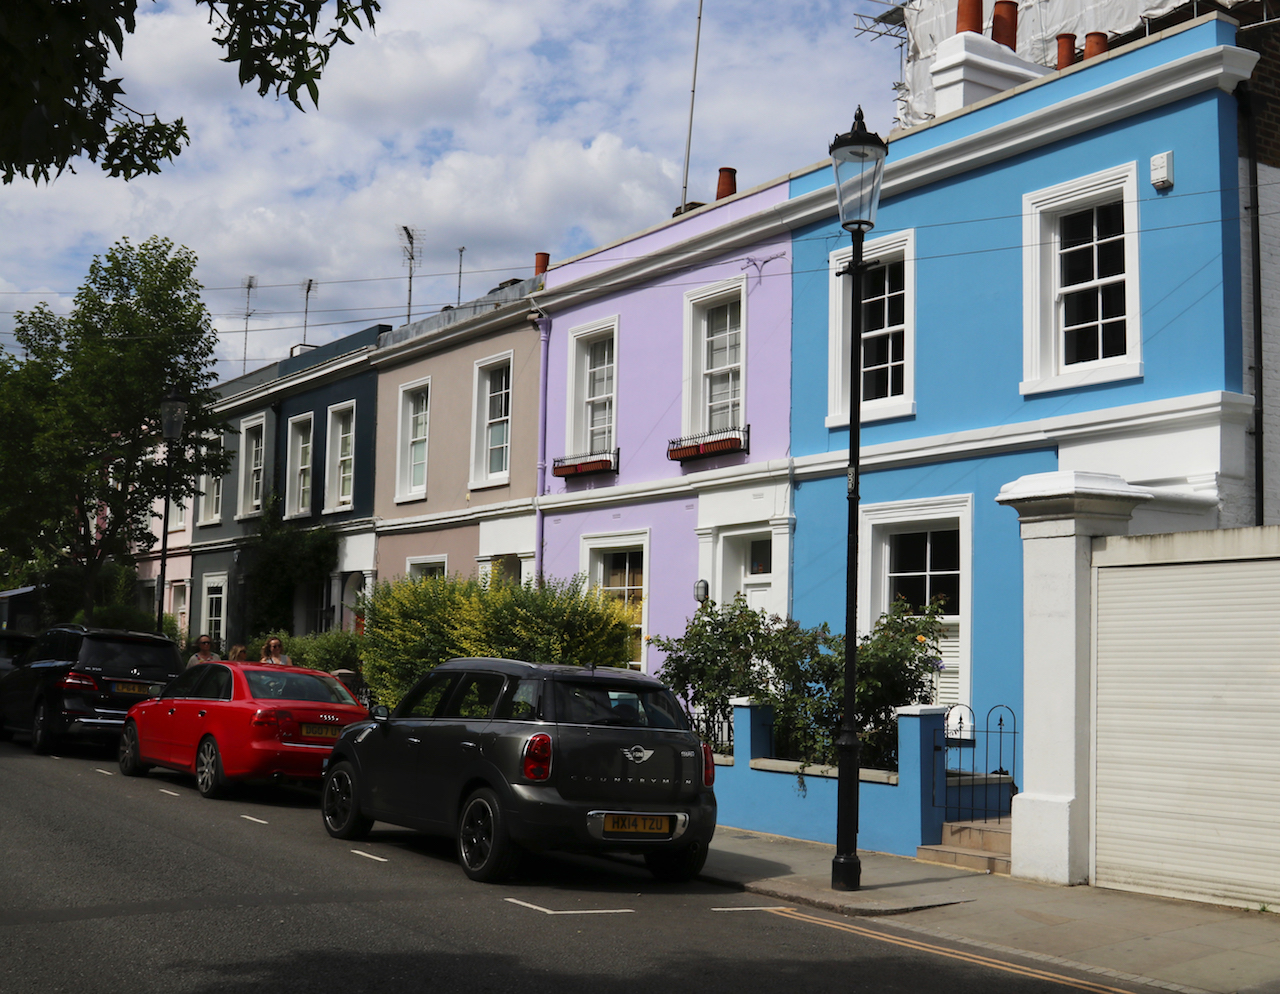 Icecream homes in Nottinghill copy